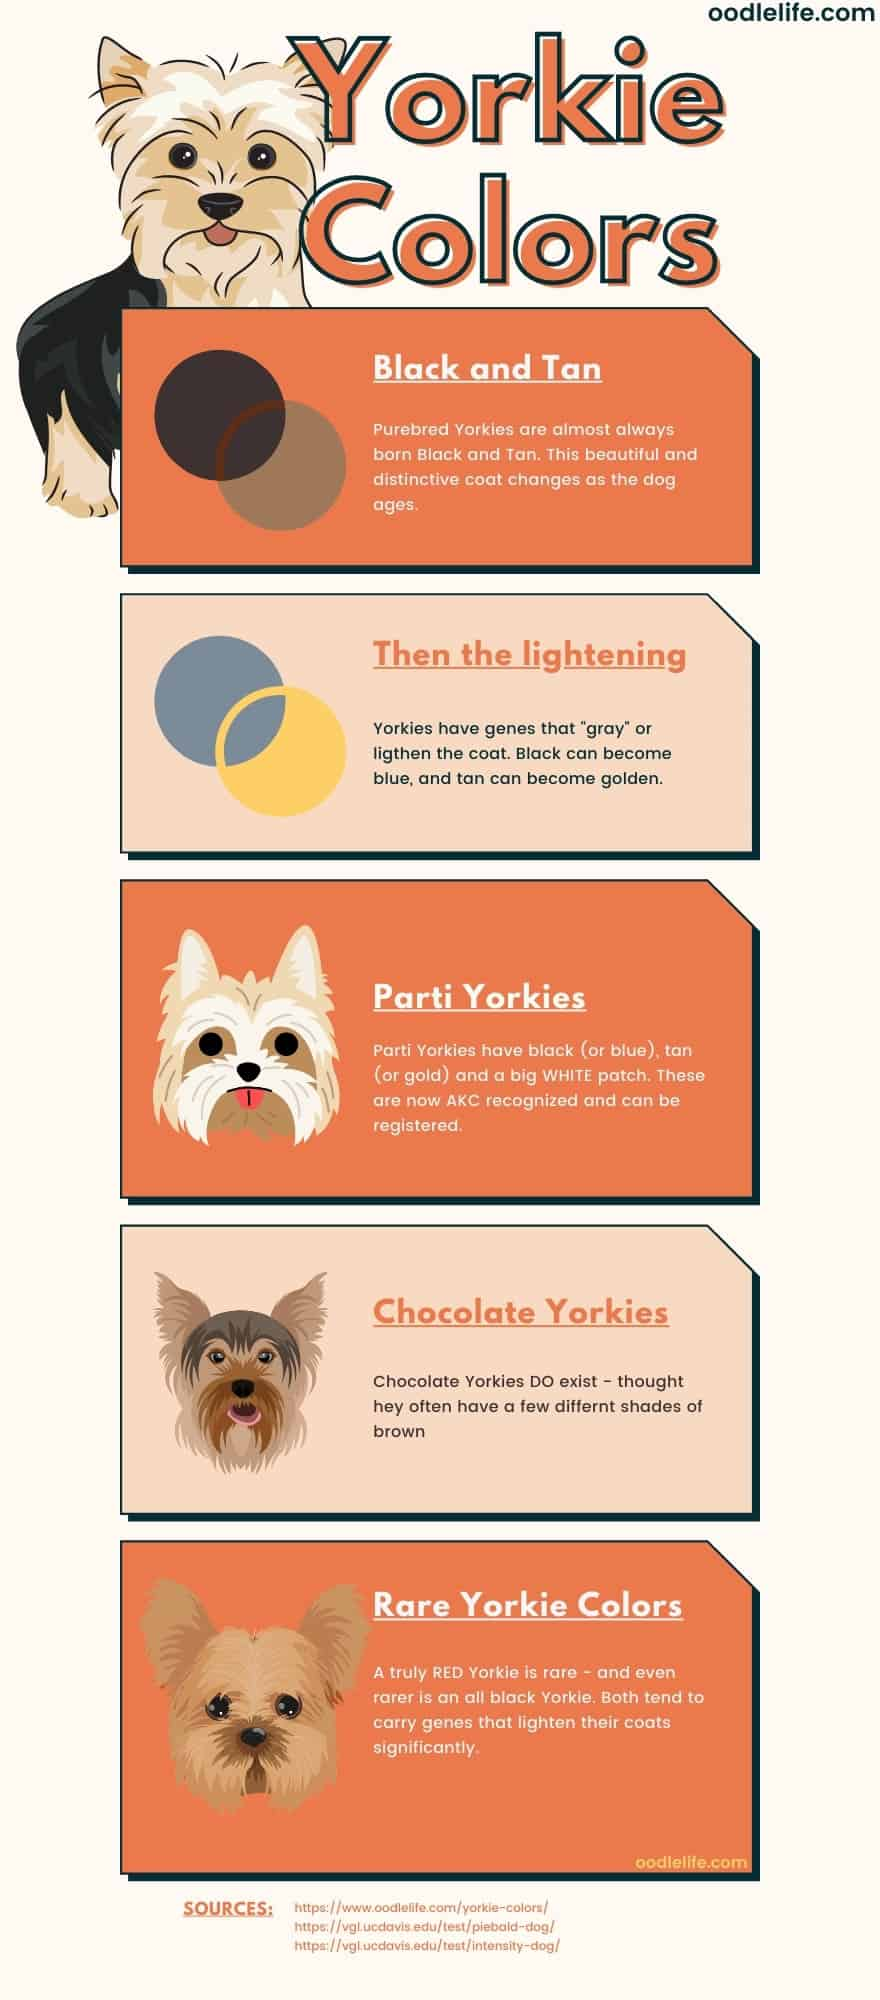 yorkie colors - every coat color explained